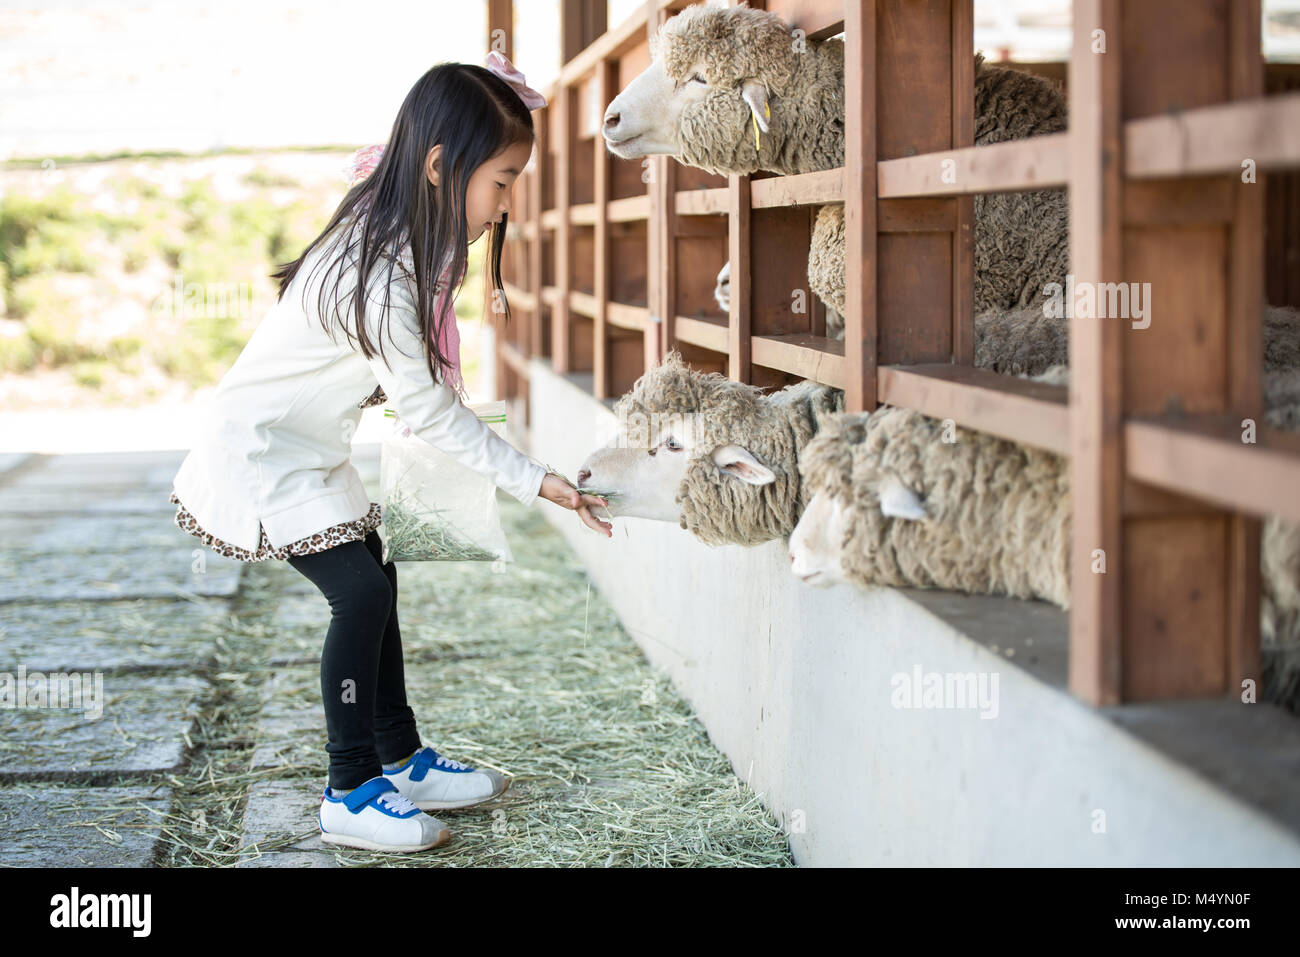 sheep ranch single christian girls Sheep terminology sheep and lambs  ranch a ranch is a farm consisting of a large tract of land along with facilities needed to raise livestock abattoir an.